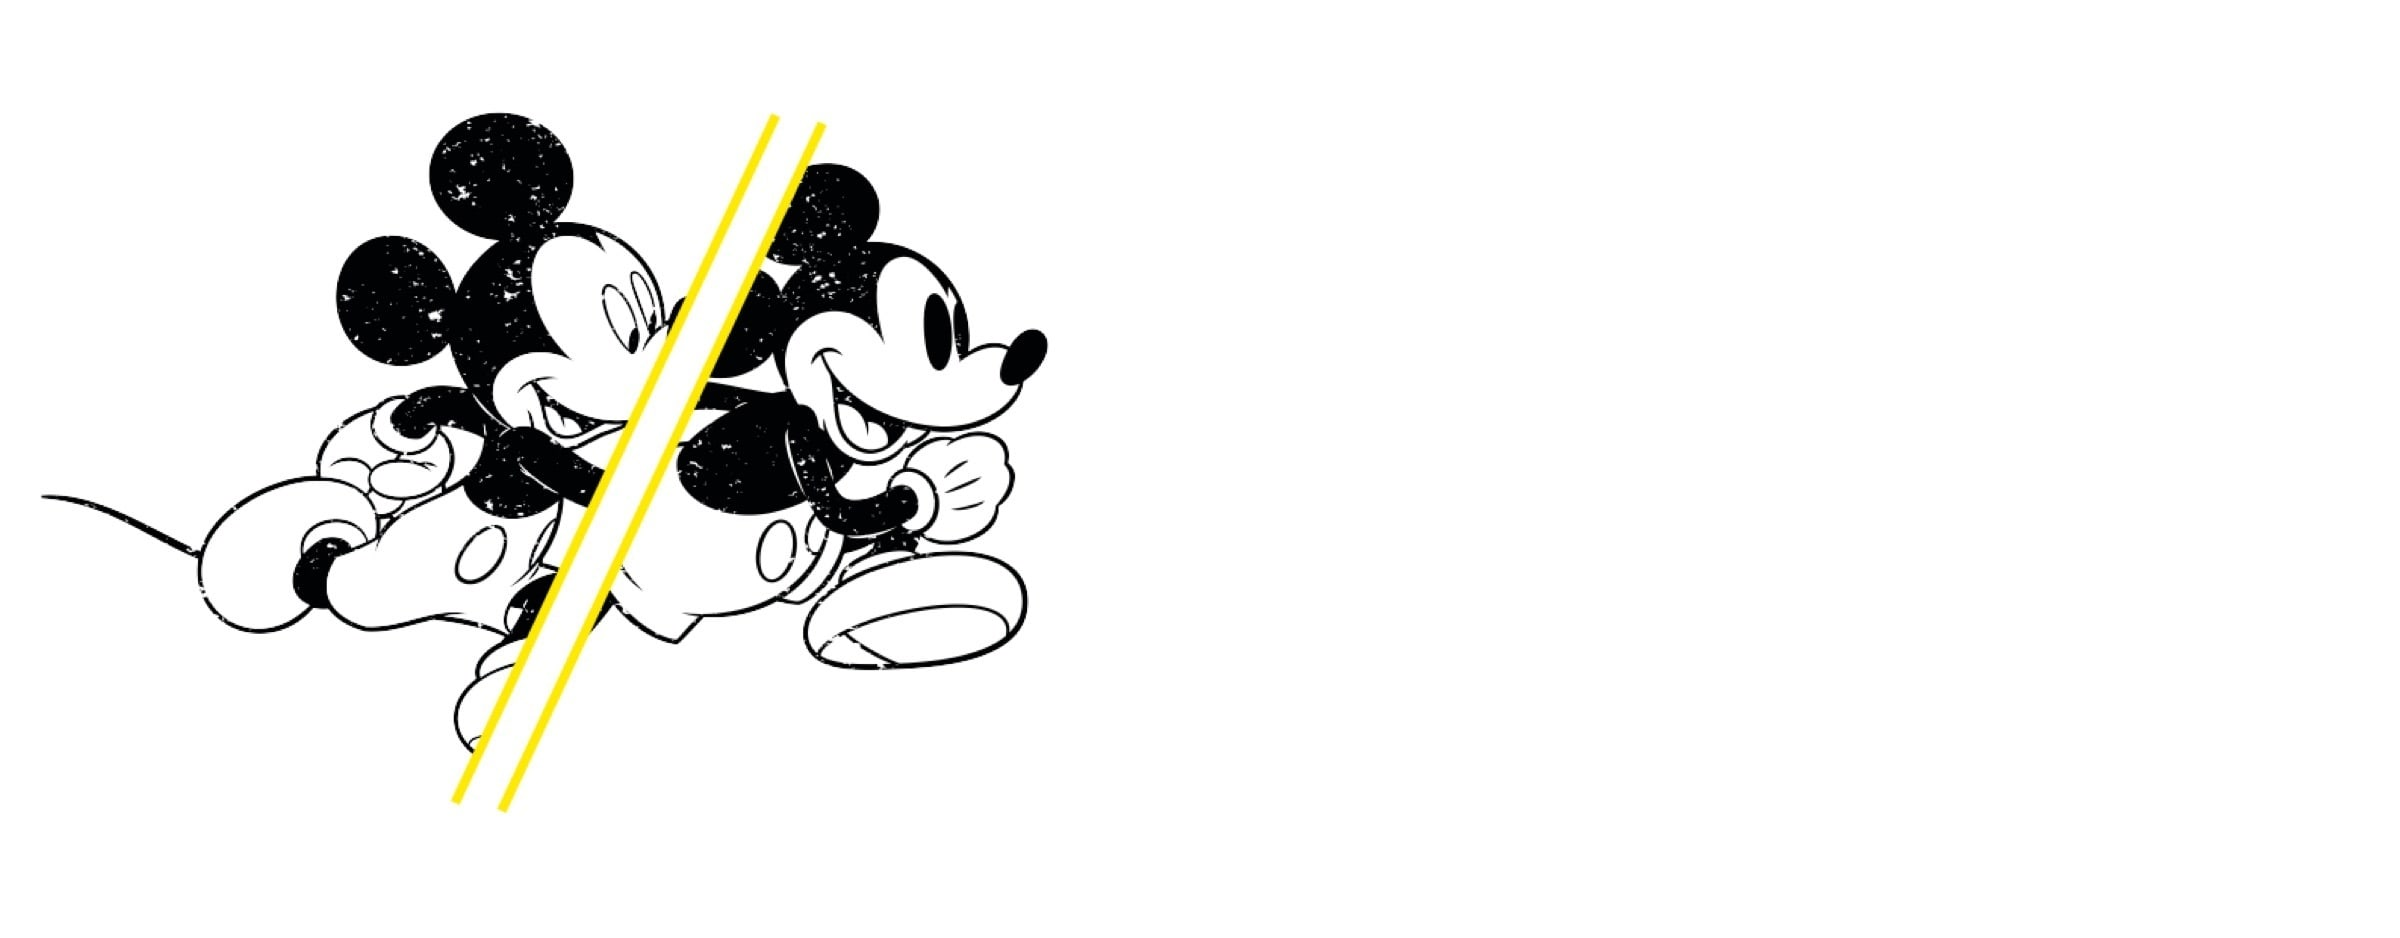 Mickey 90 | Celebrate 90 years of the 'True Original' Mickey Mouse